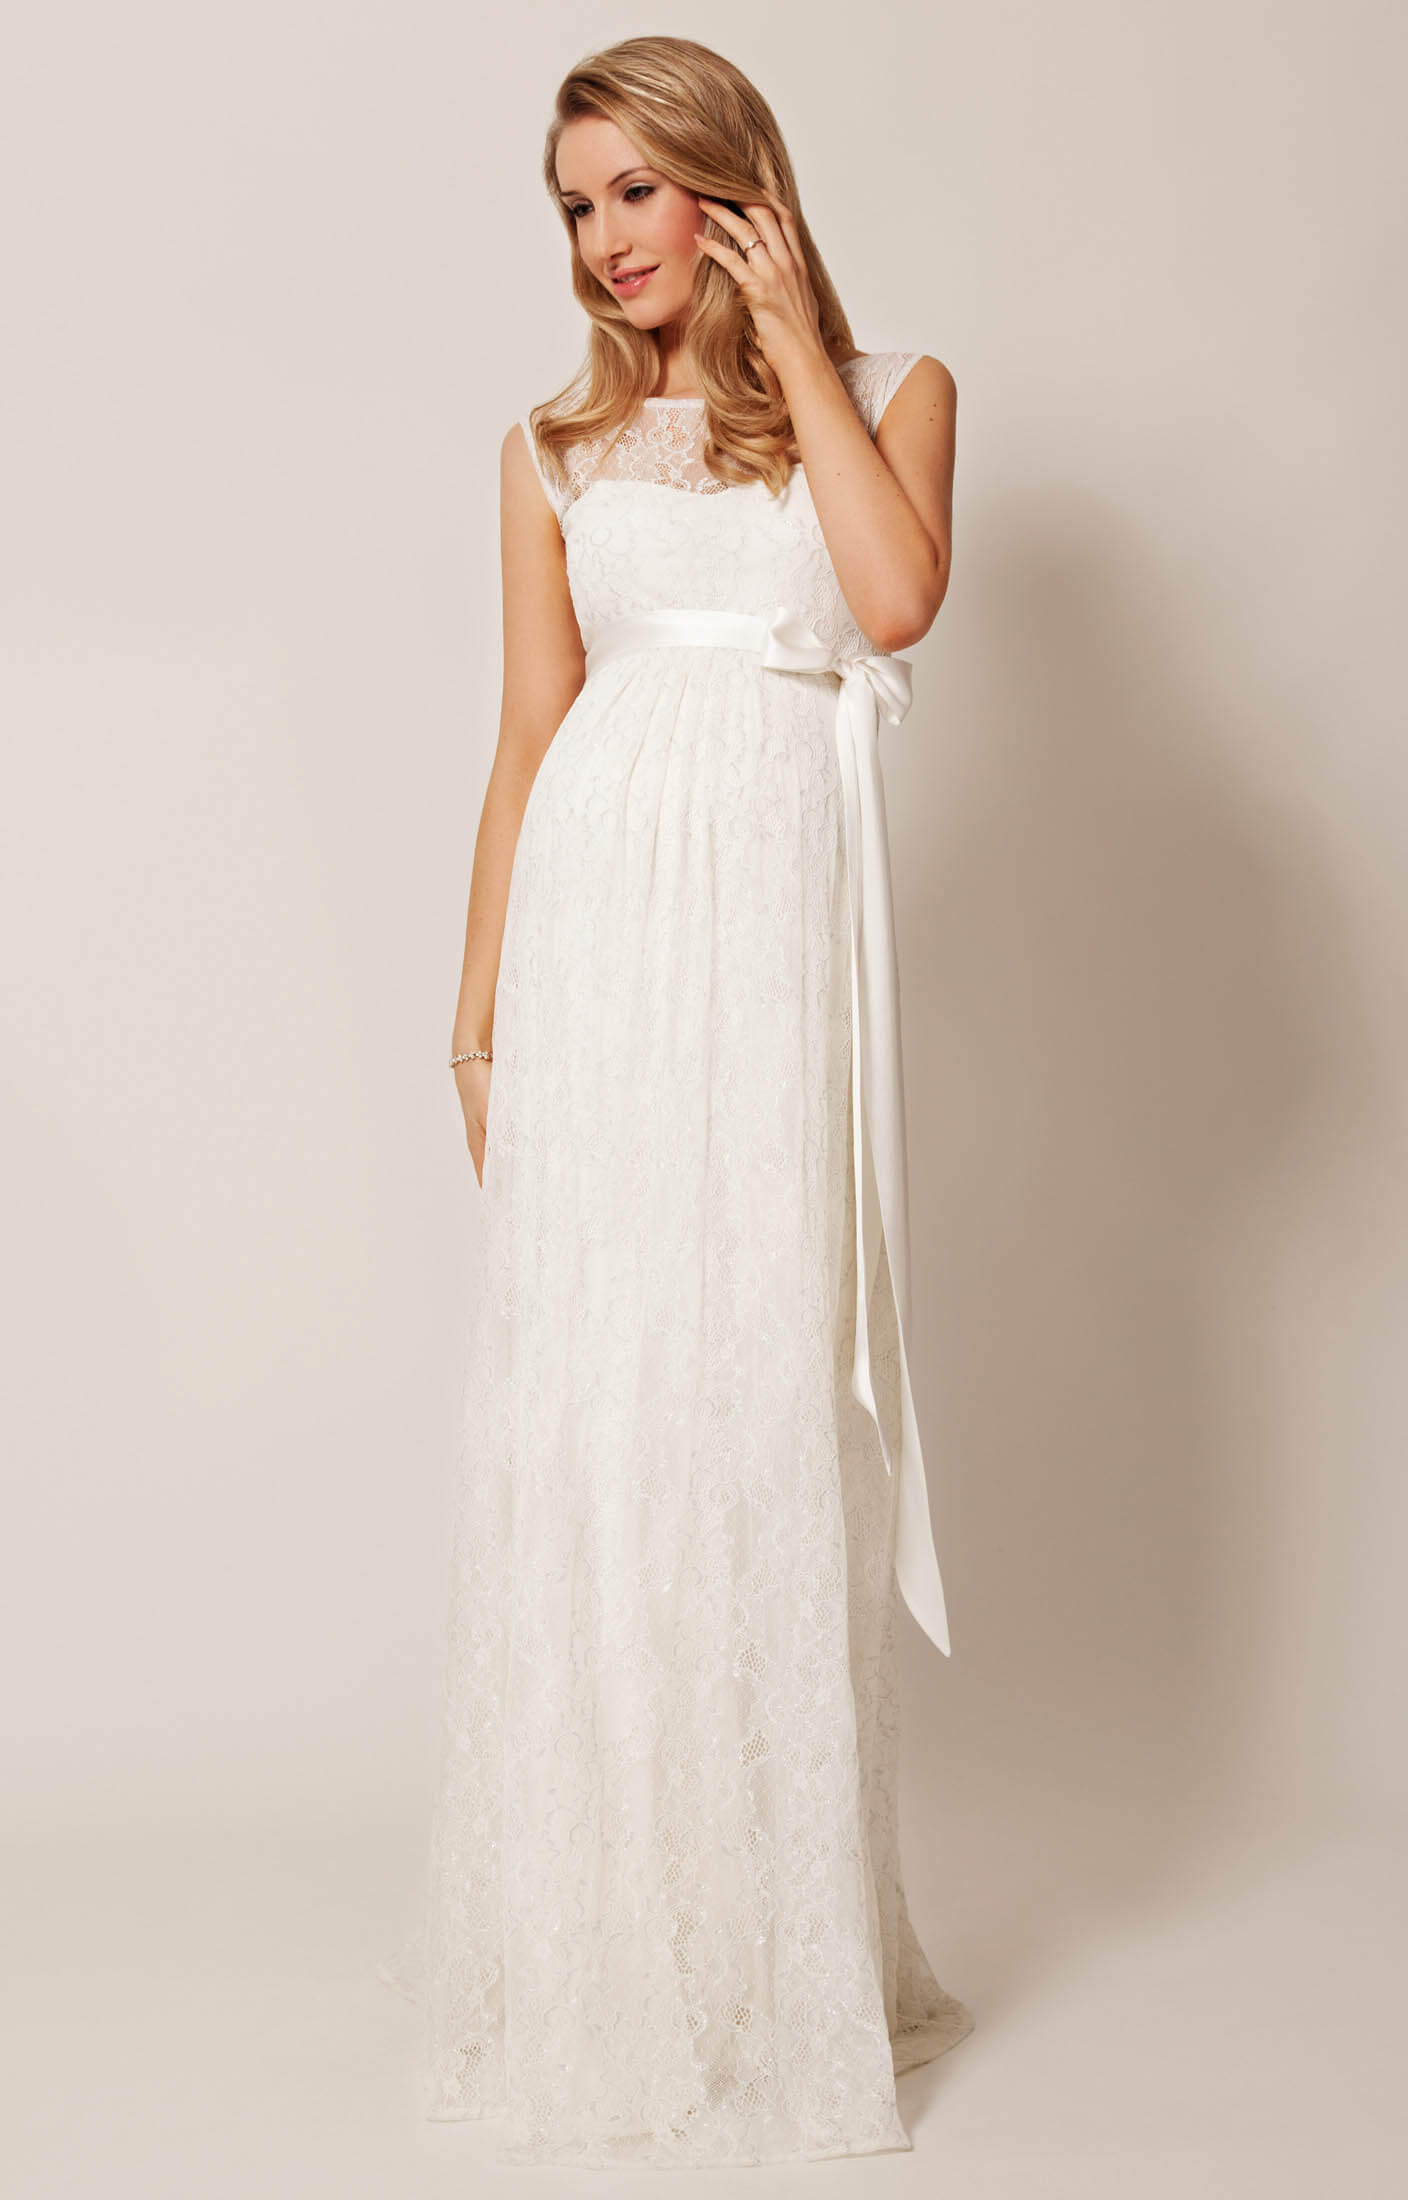 Ellie maternity wedding gown long ivory maternity for Wedding dress for pregnant woman